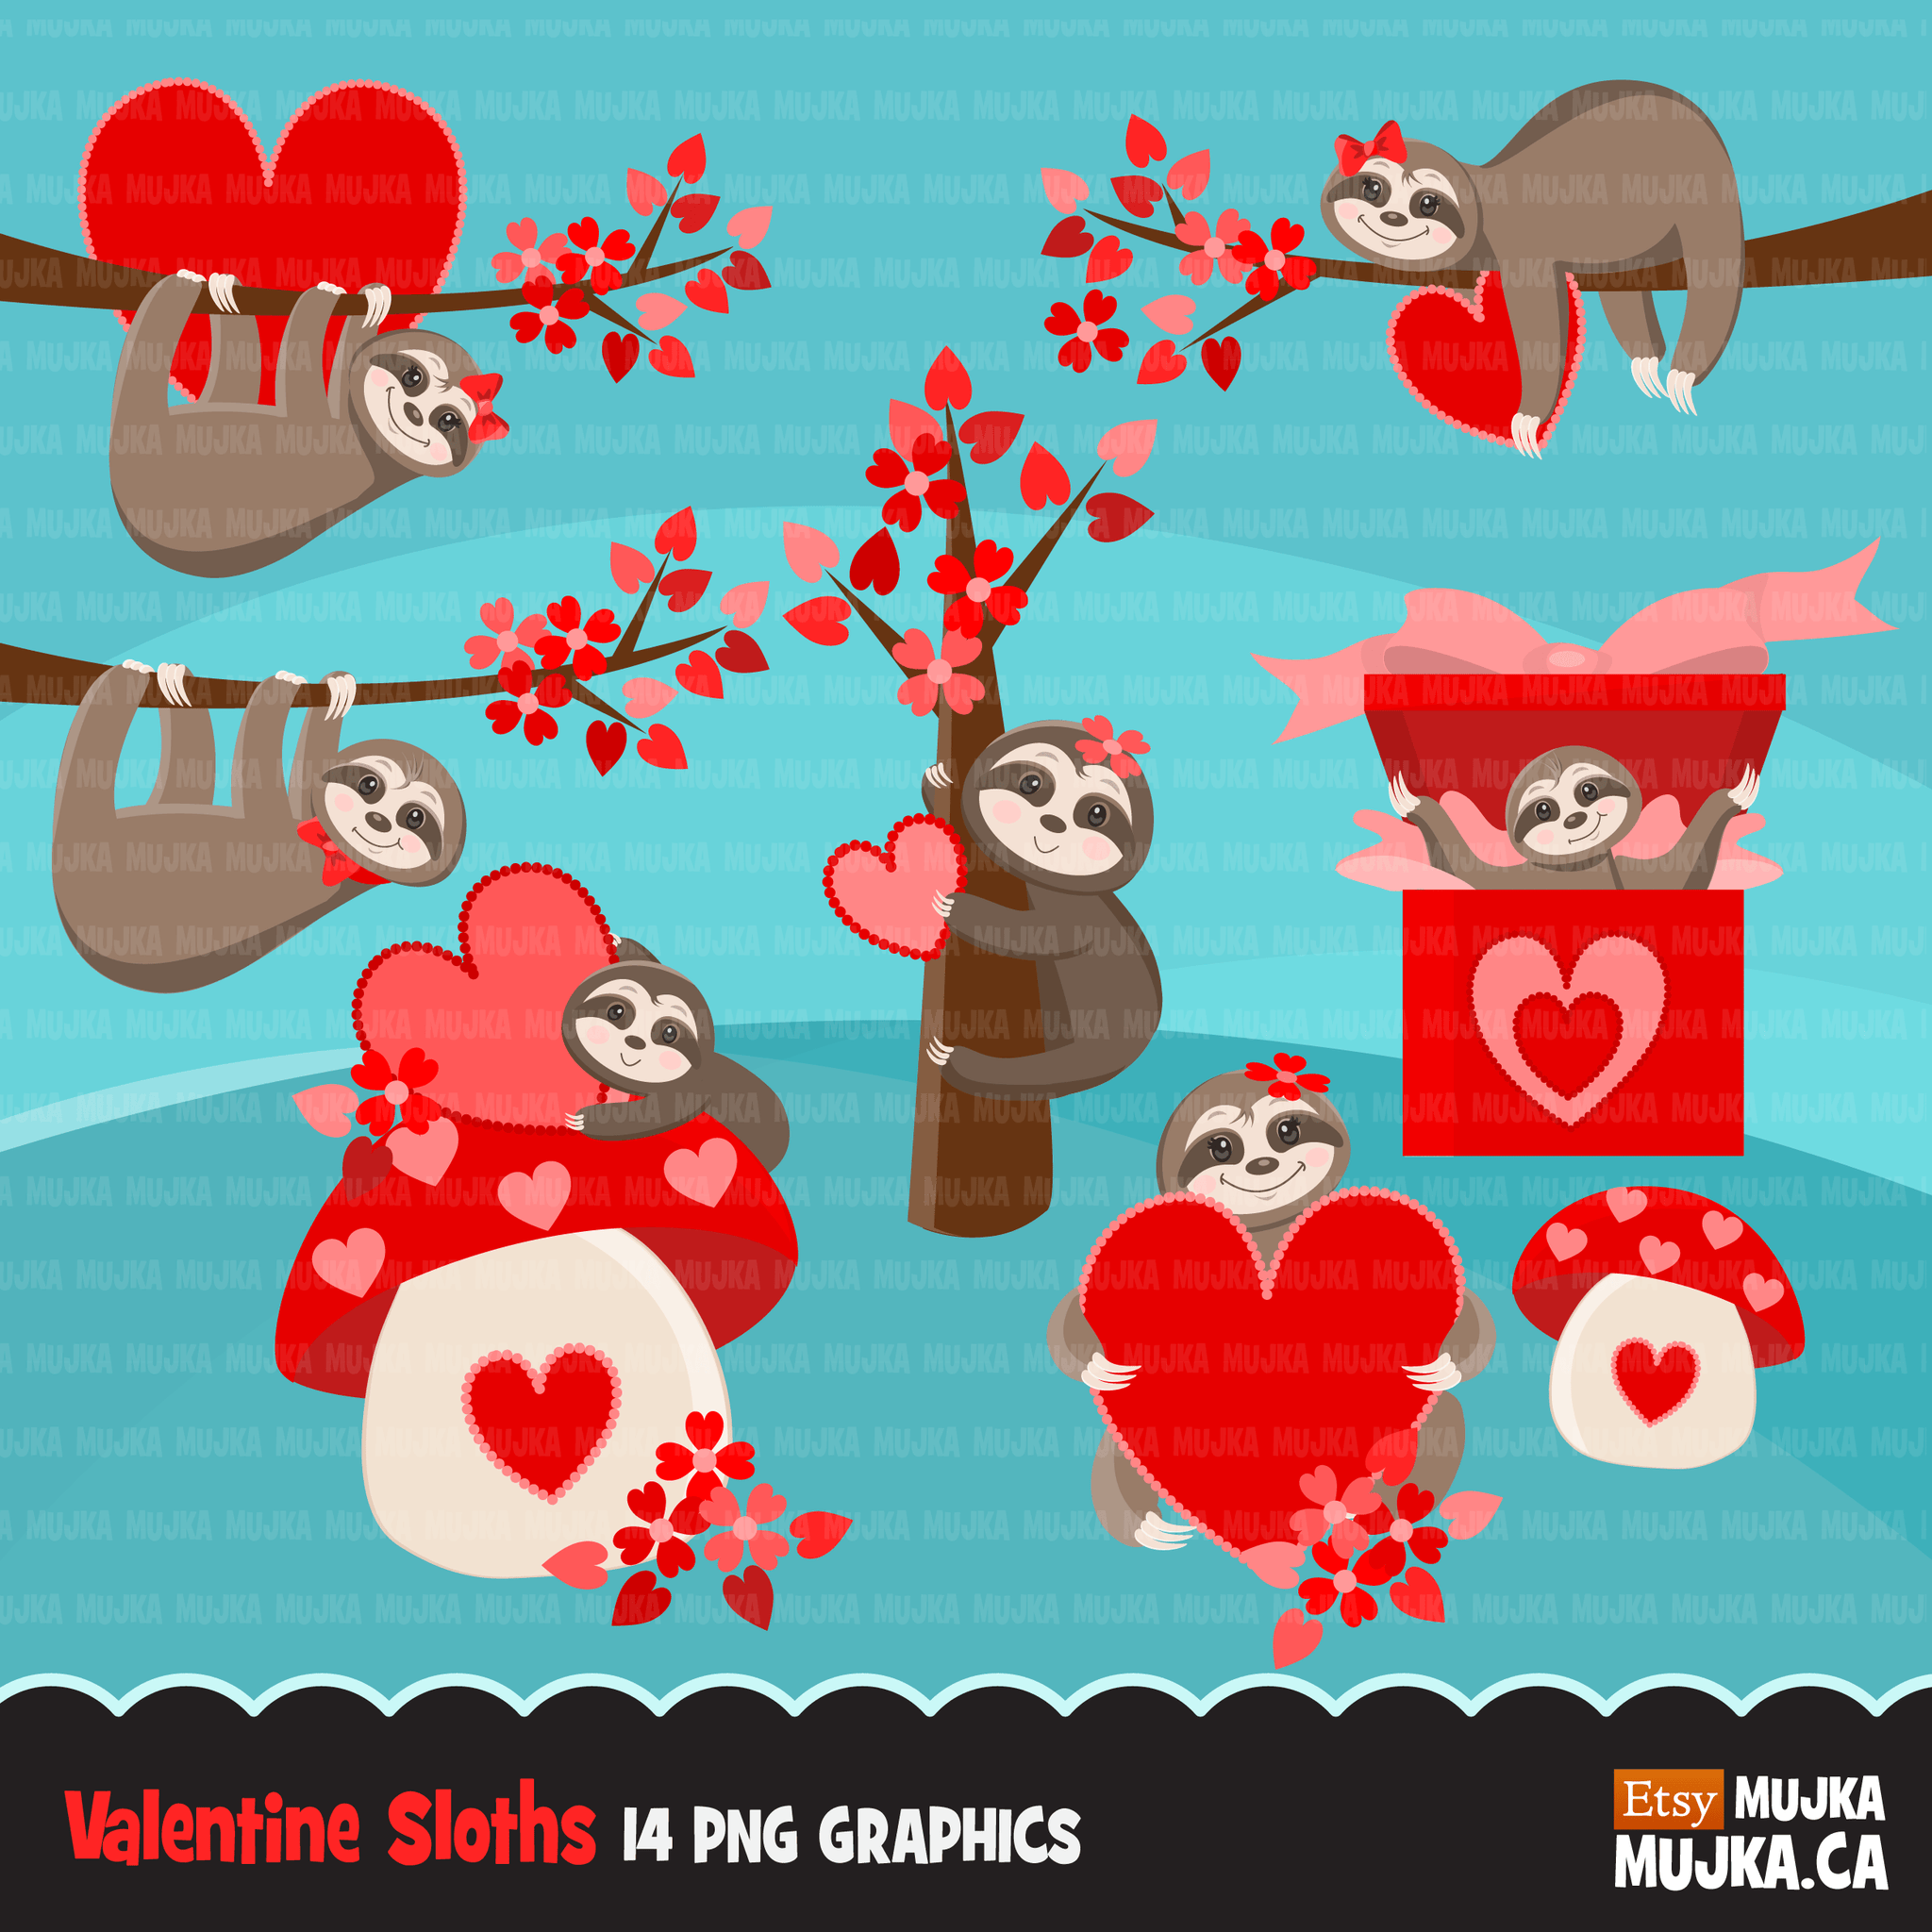 Valentine Clipart Design Bundle V1 Cute Celebration Graphics Boys An Mujka Cliparts